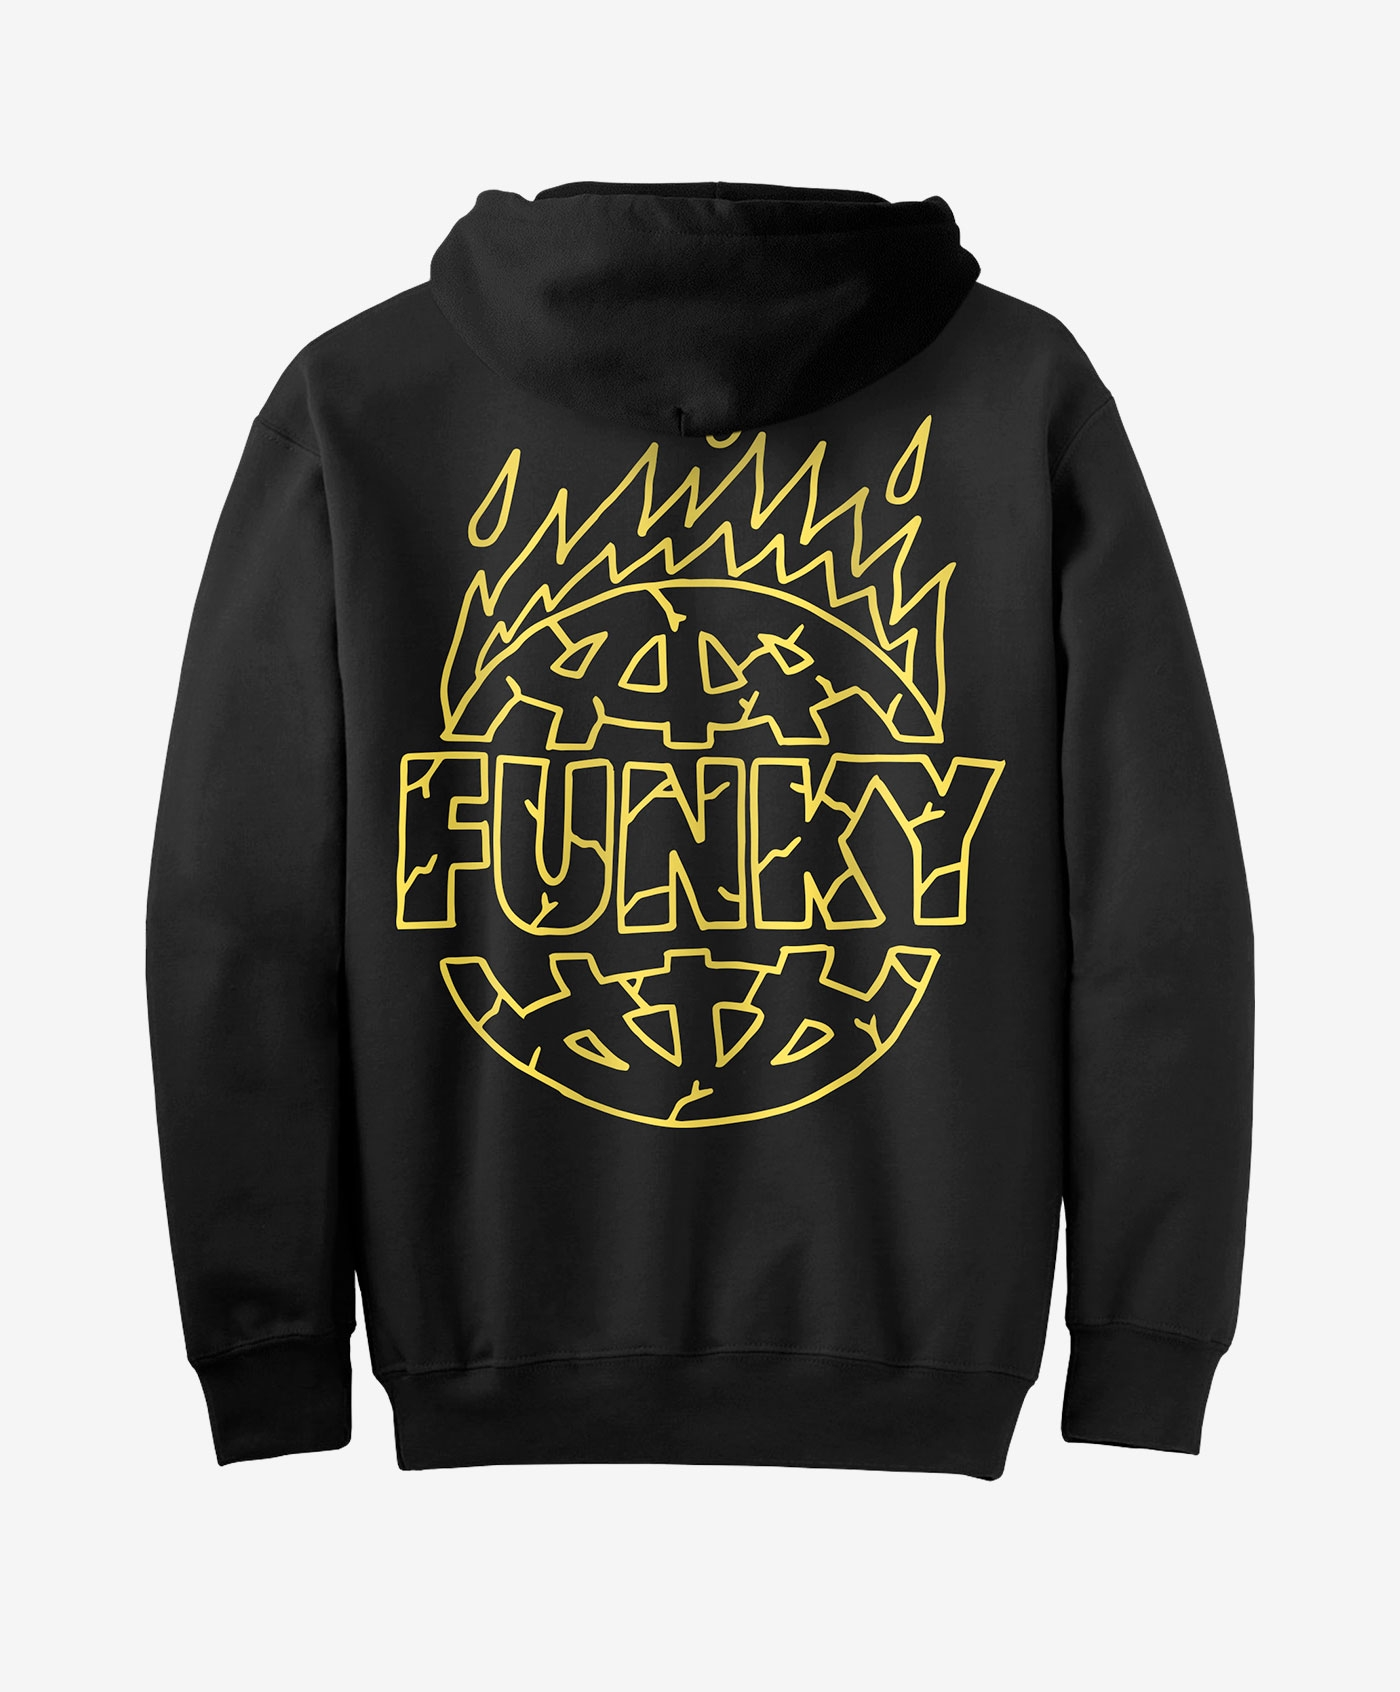 funky-hot-hoodie-black-back